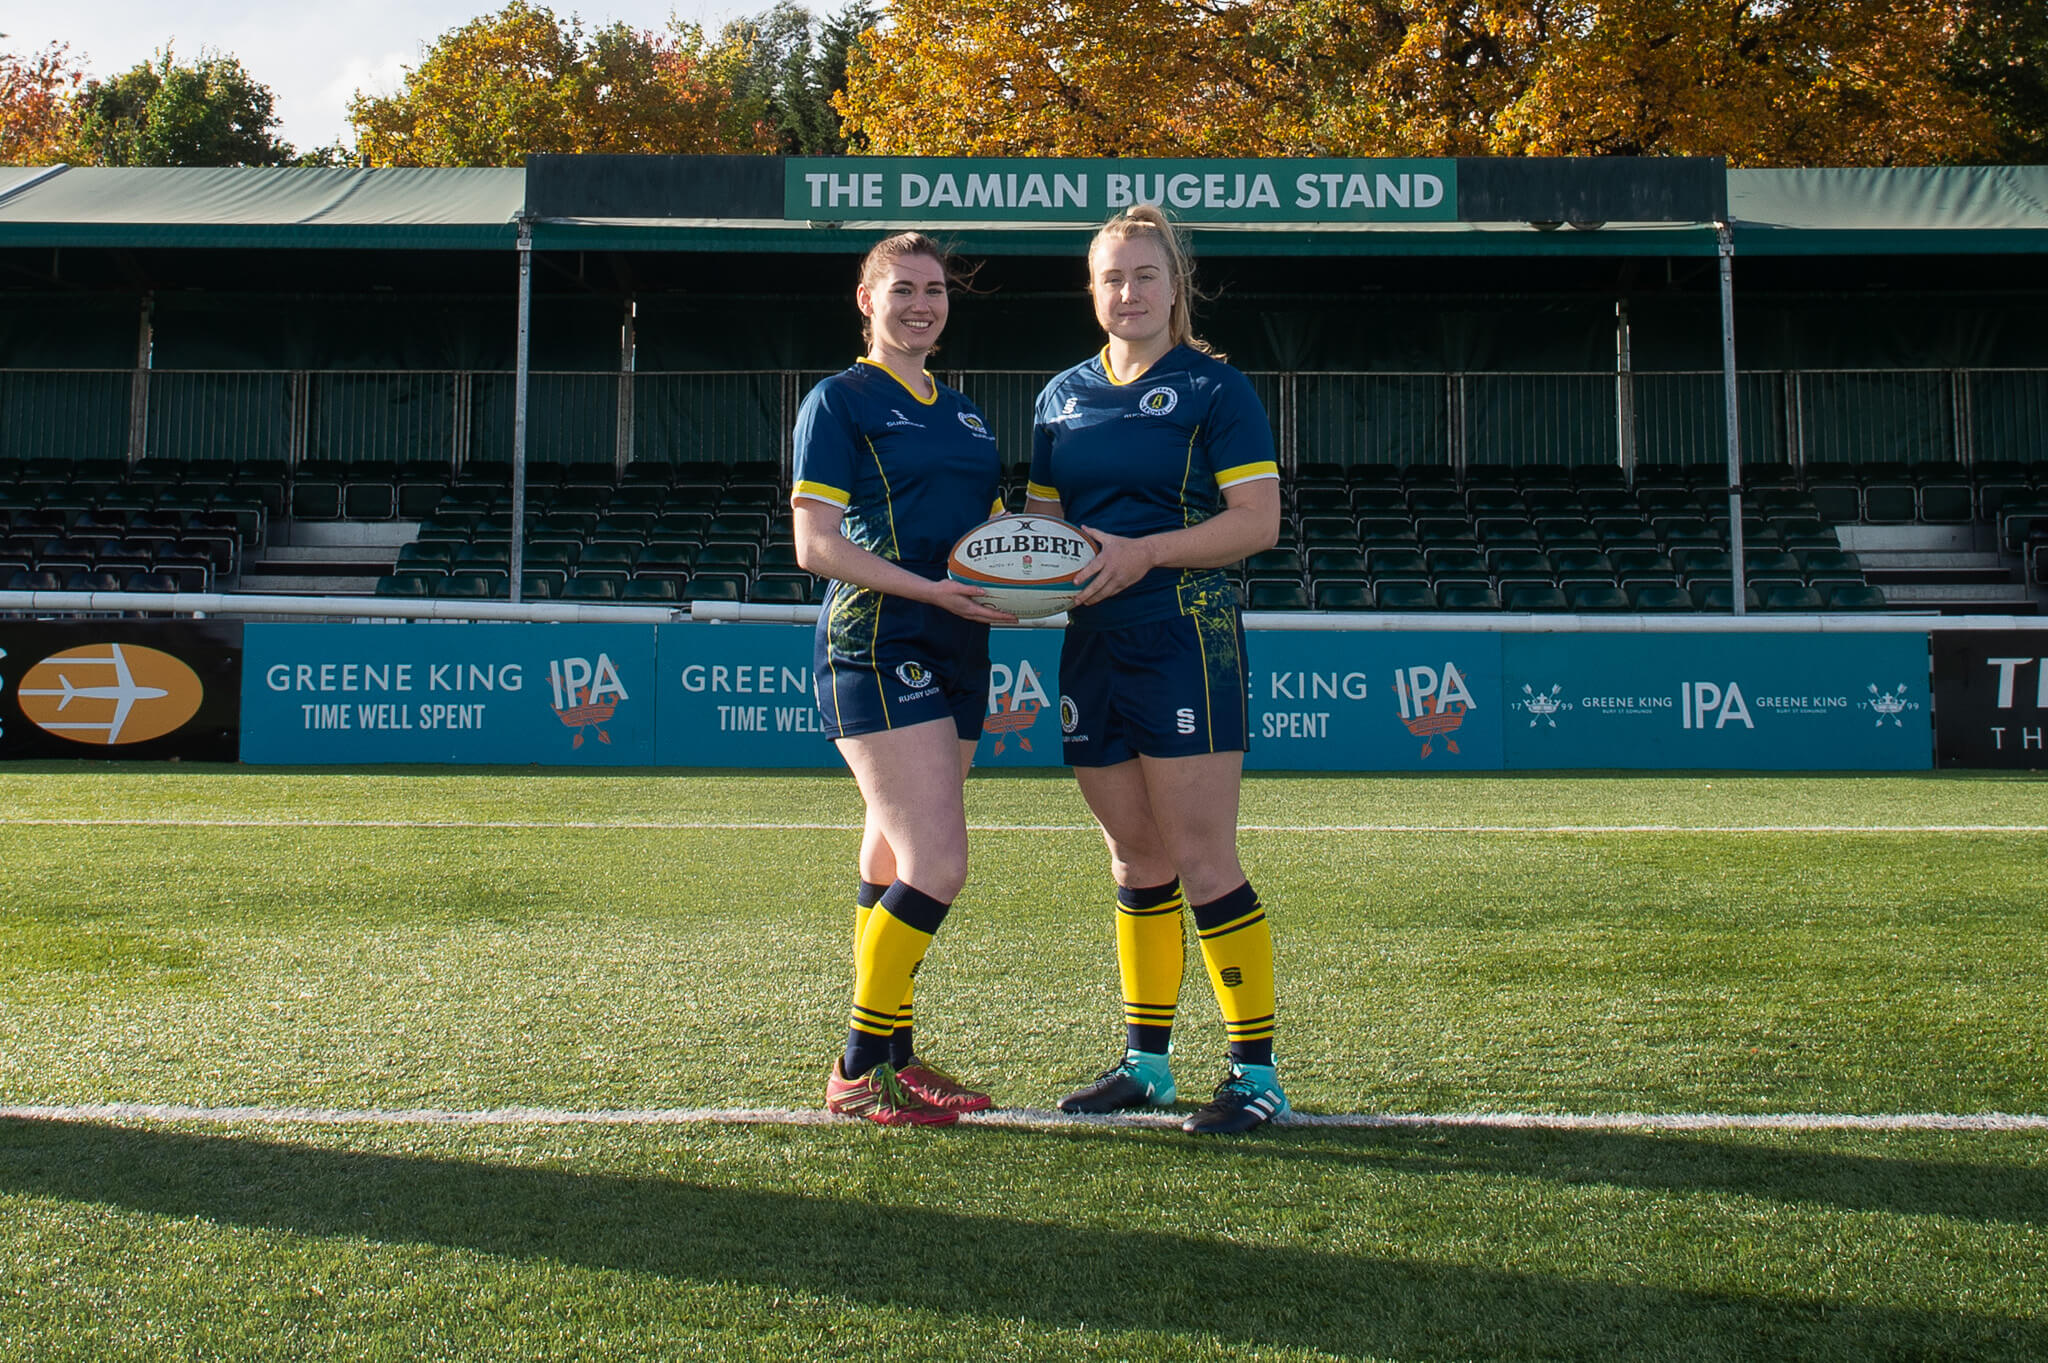 female Brunel rugby players in the Ealing Trailfinders rugby club